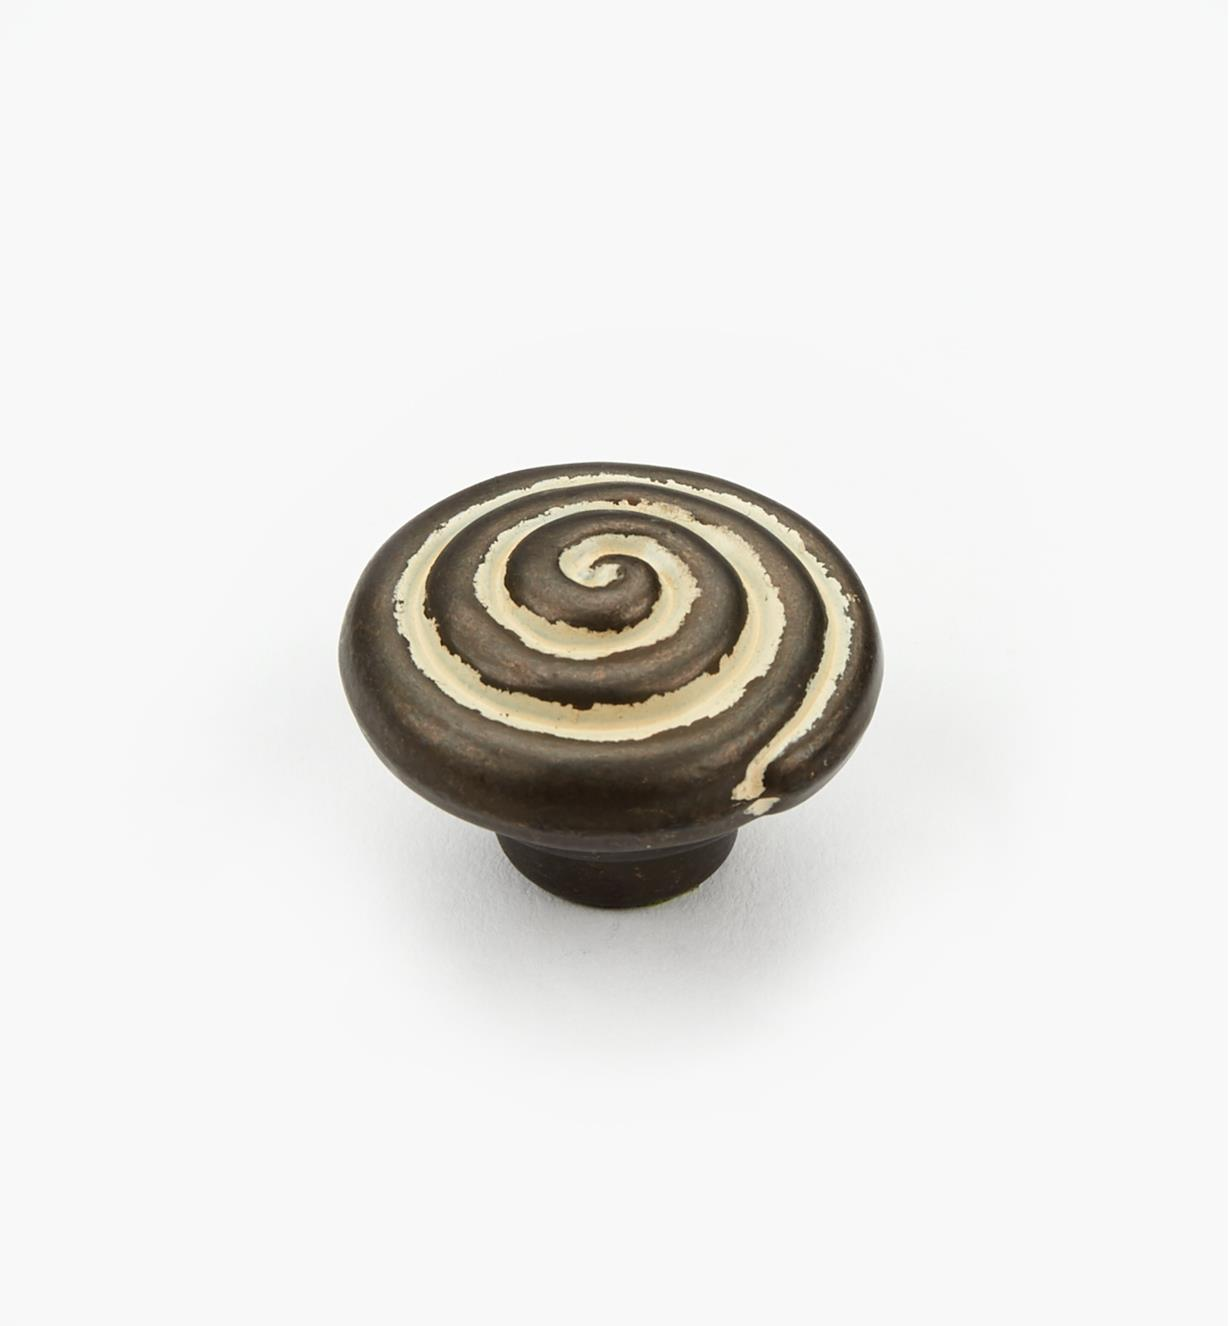 "03W2826 - 1 1/4"" Antique Swirl Knob"